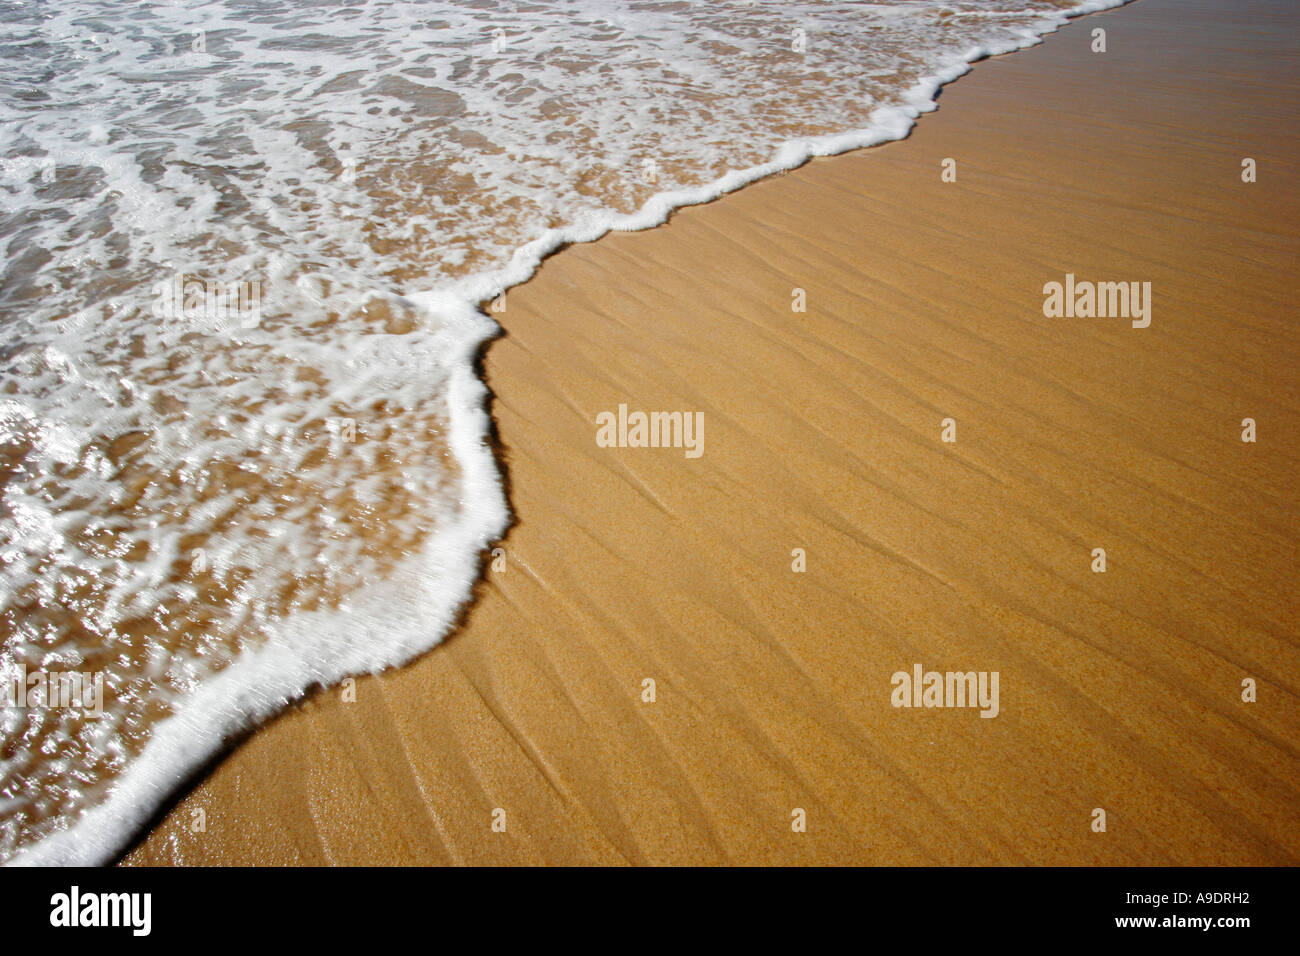 ocean tide or wave coming in to a sandy beach - Stock Image